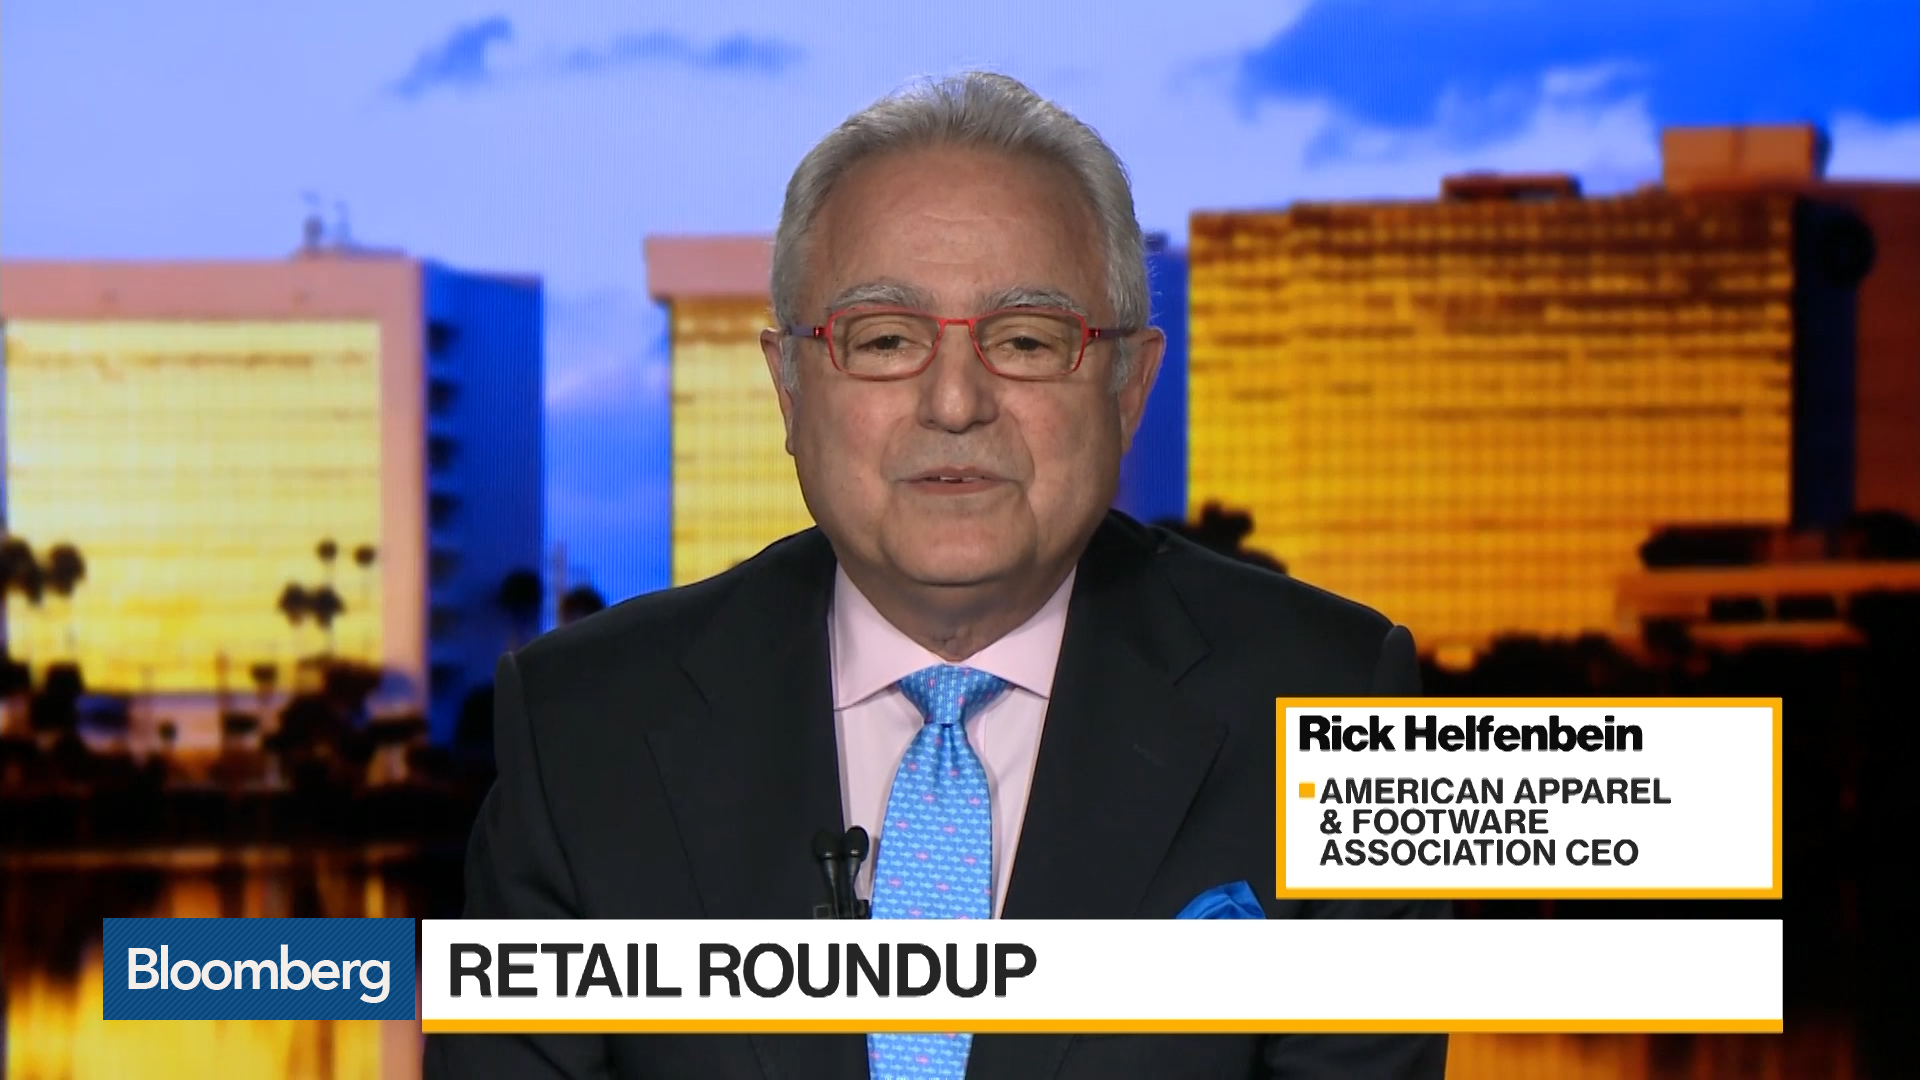 Retailers Hoping for Strong End to Holiday Season